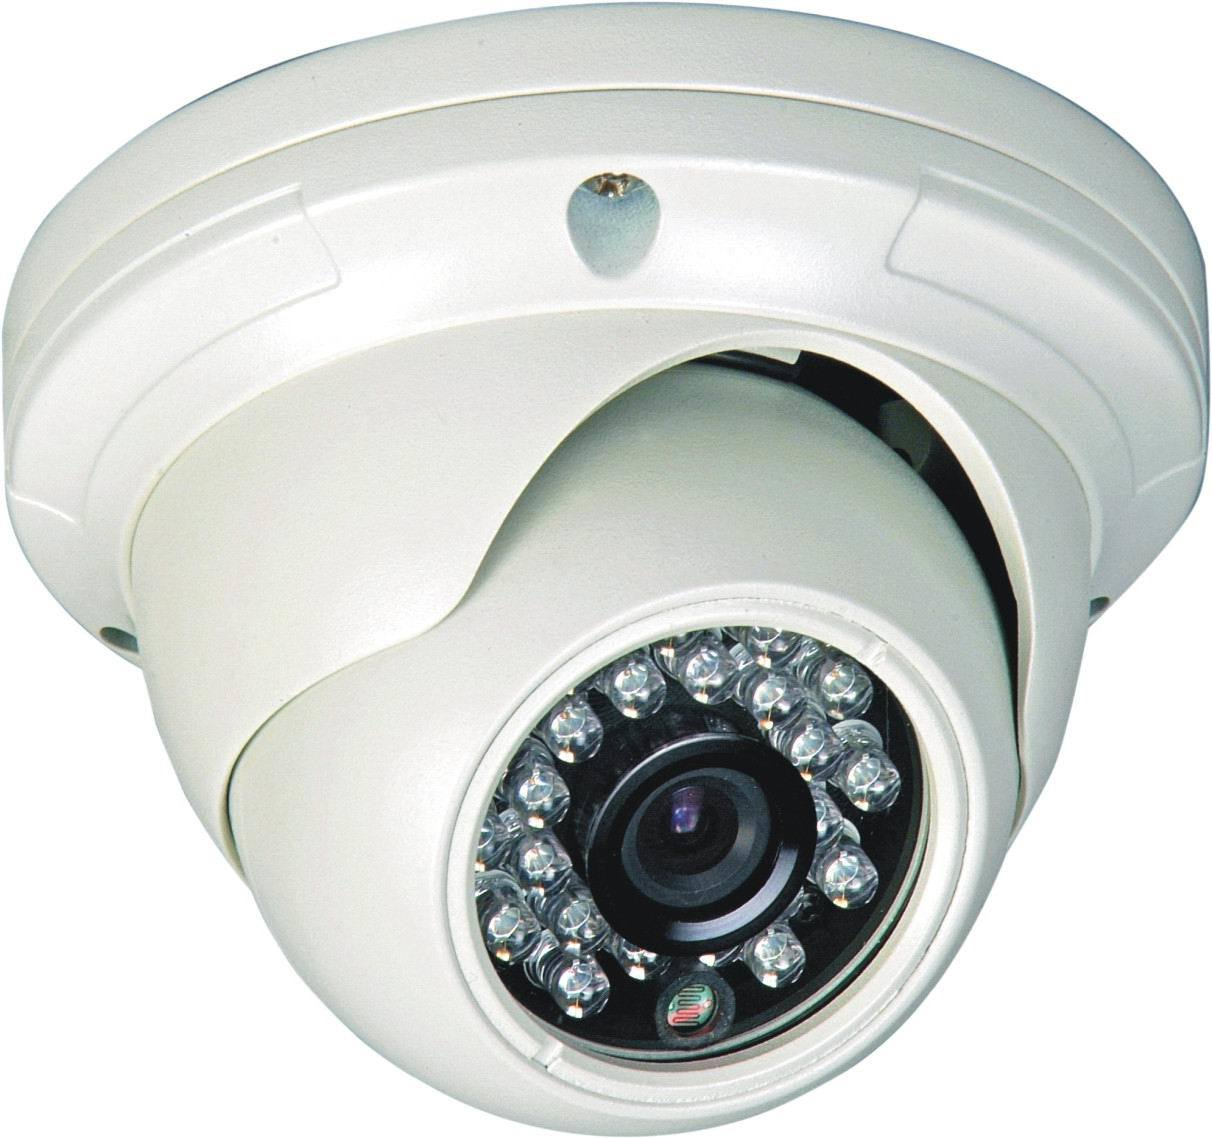 Video Surveillance Equipment - CCTV Systems Samsung CCTV